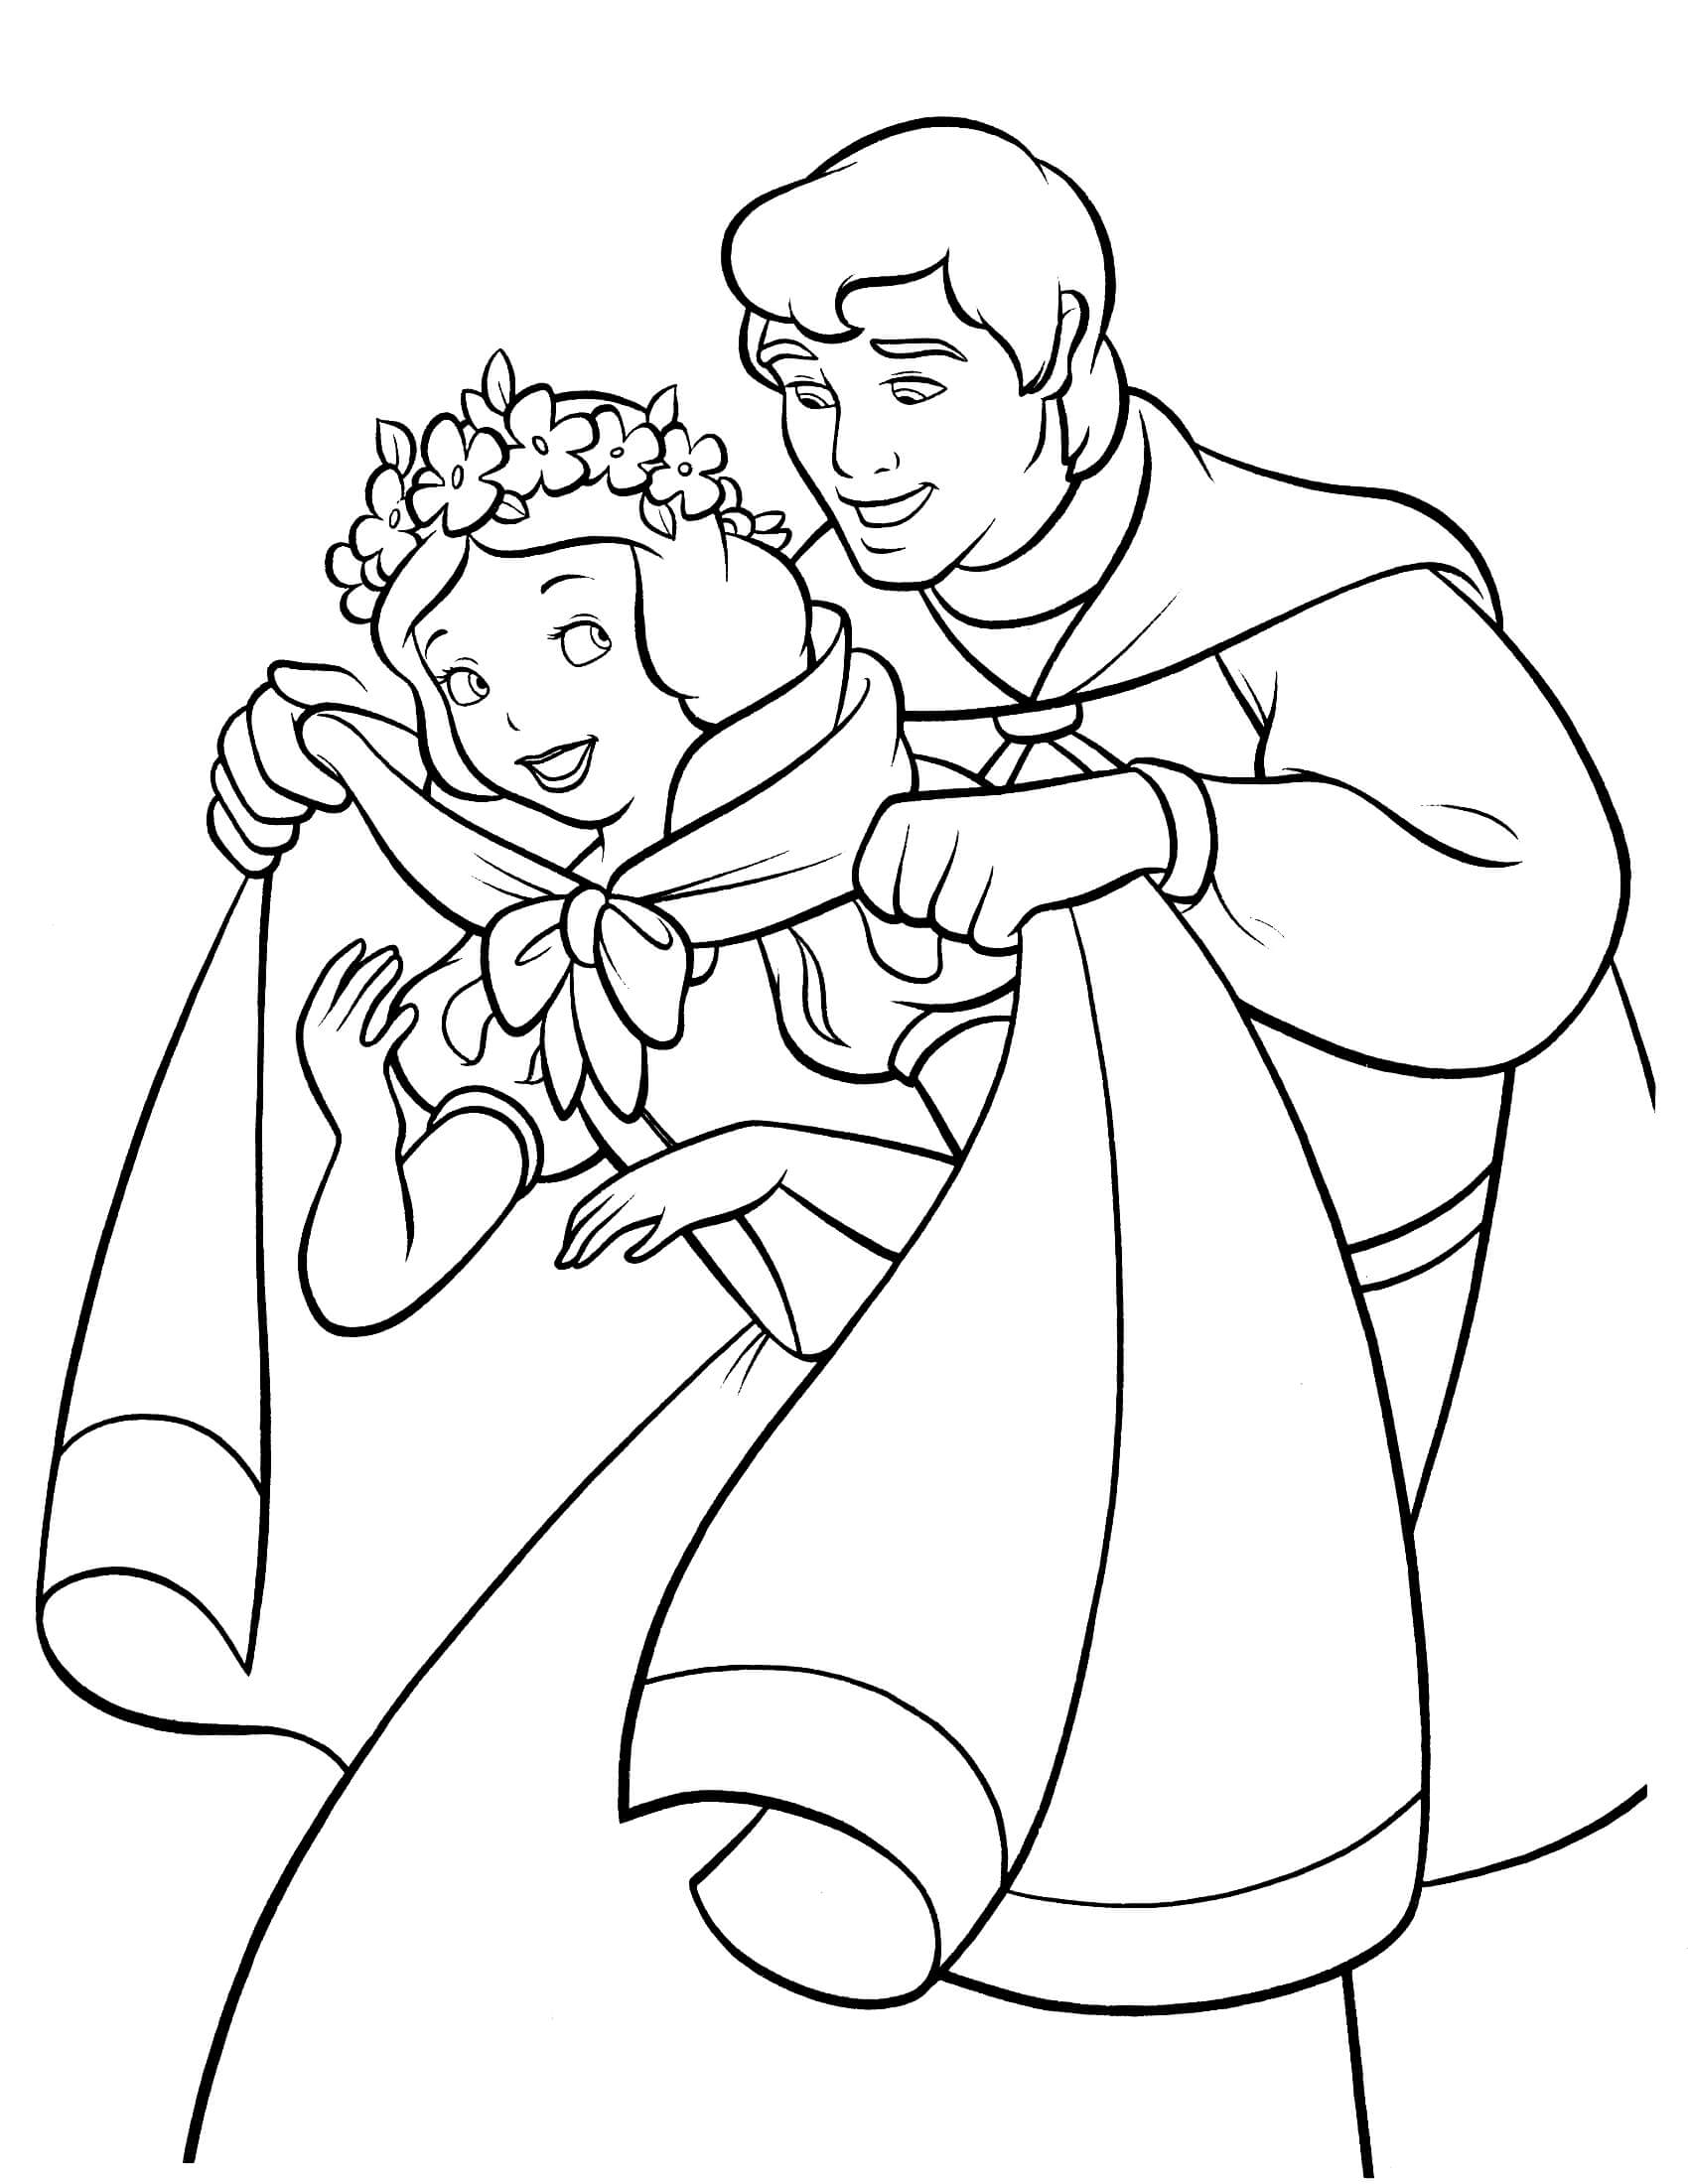 snow coloring page snow white coloring pages disneyclipscom snow coloring page